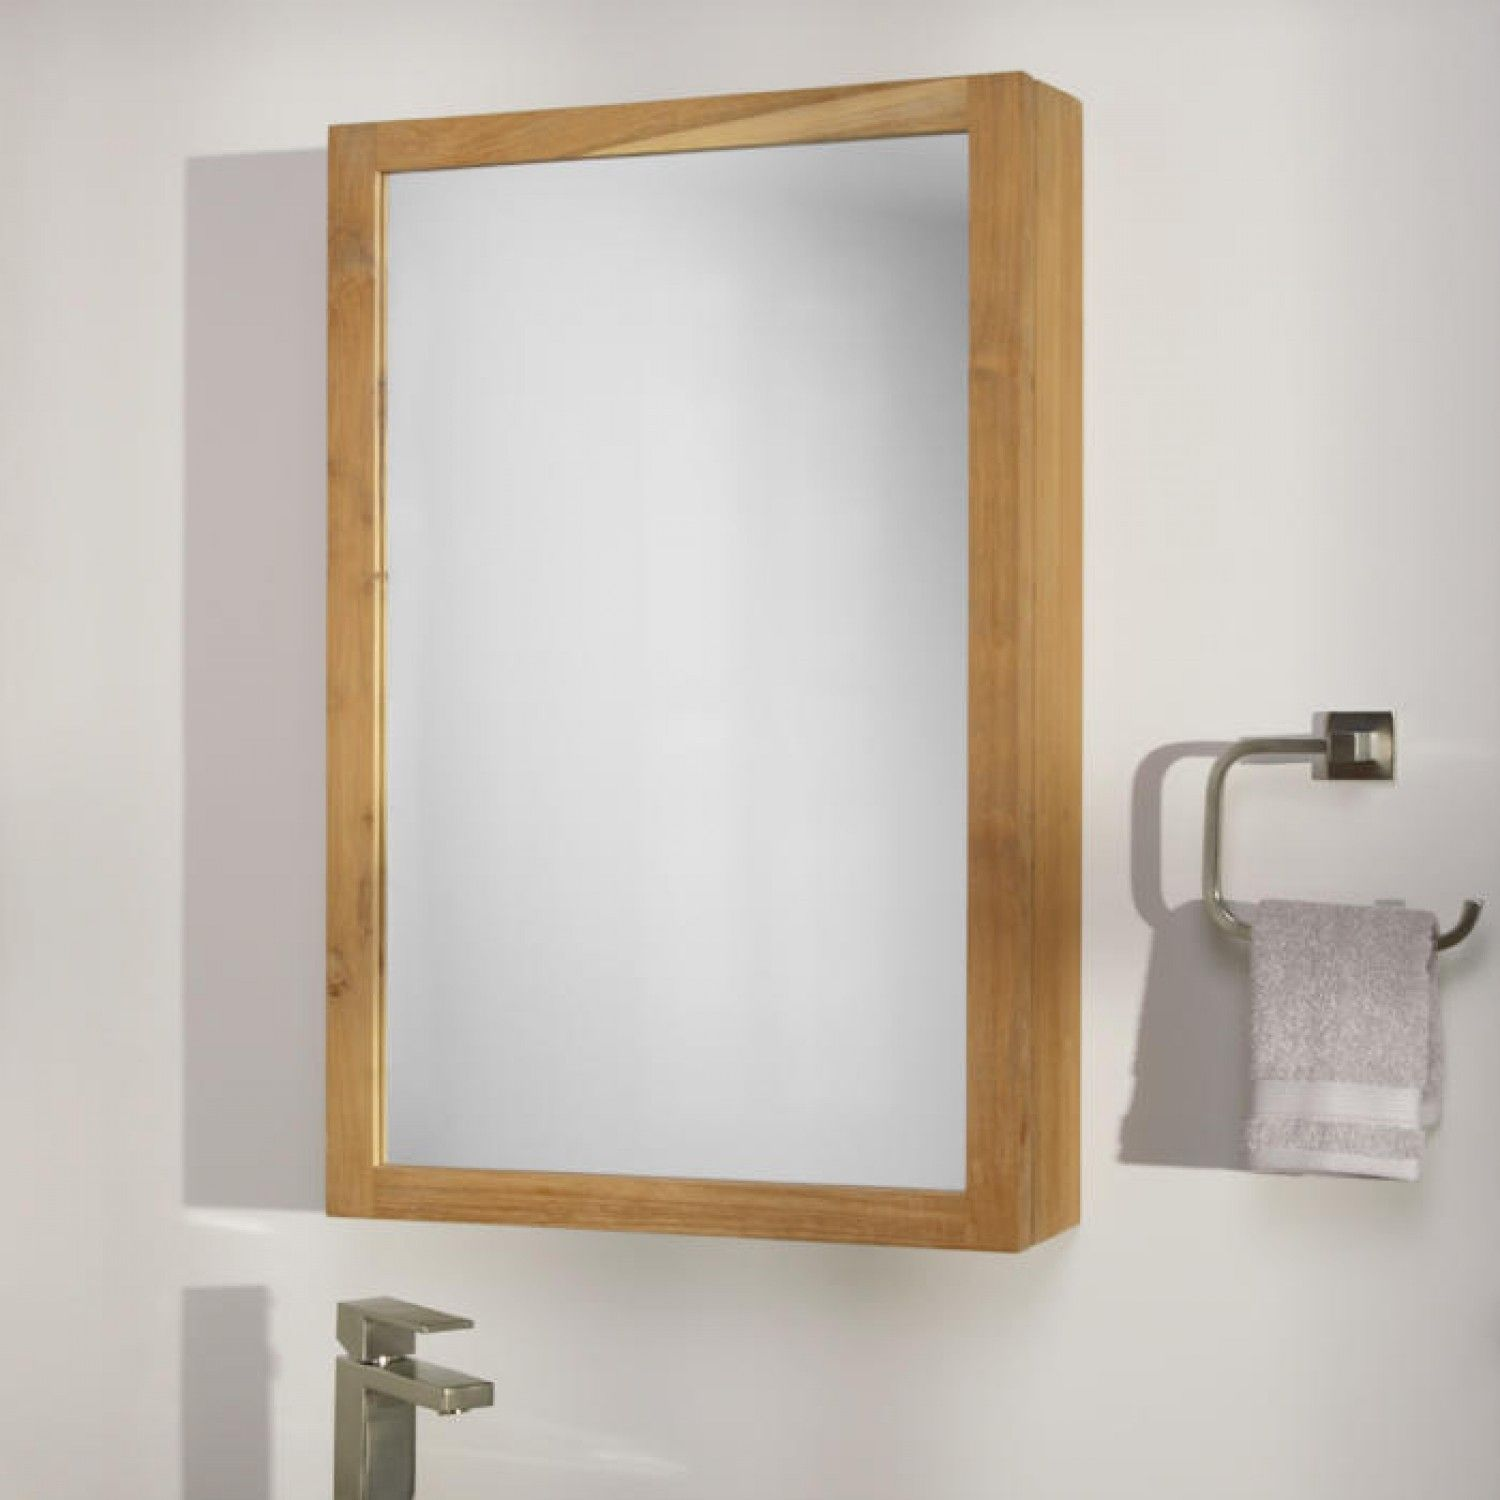 Corner Bathroom Cabinet And Simple Natural Wooden With Mirror Also Prepossessing Small Corner Wall Cabinet For Bathroom Inspiration